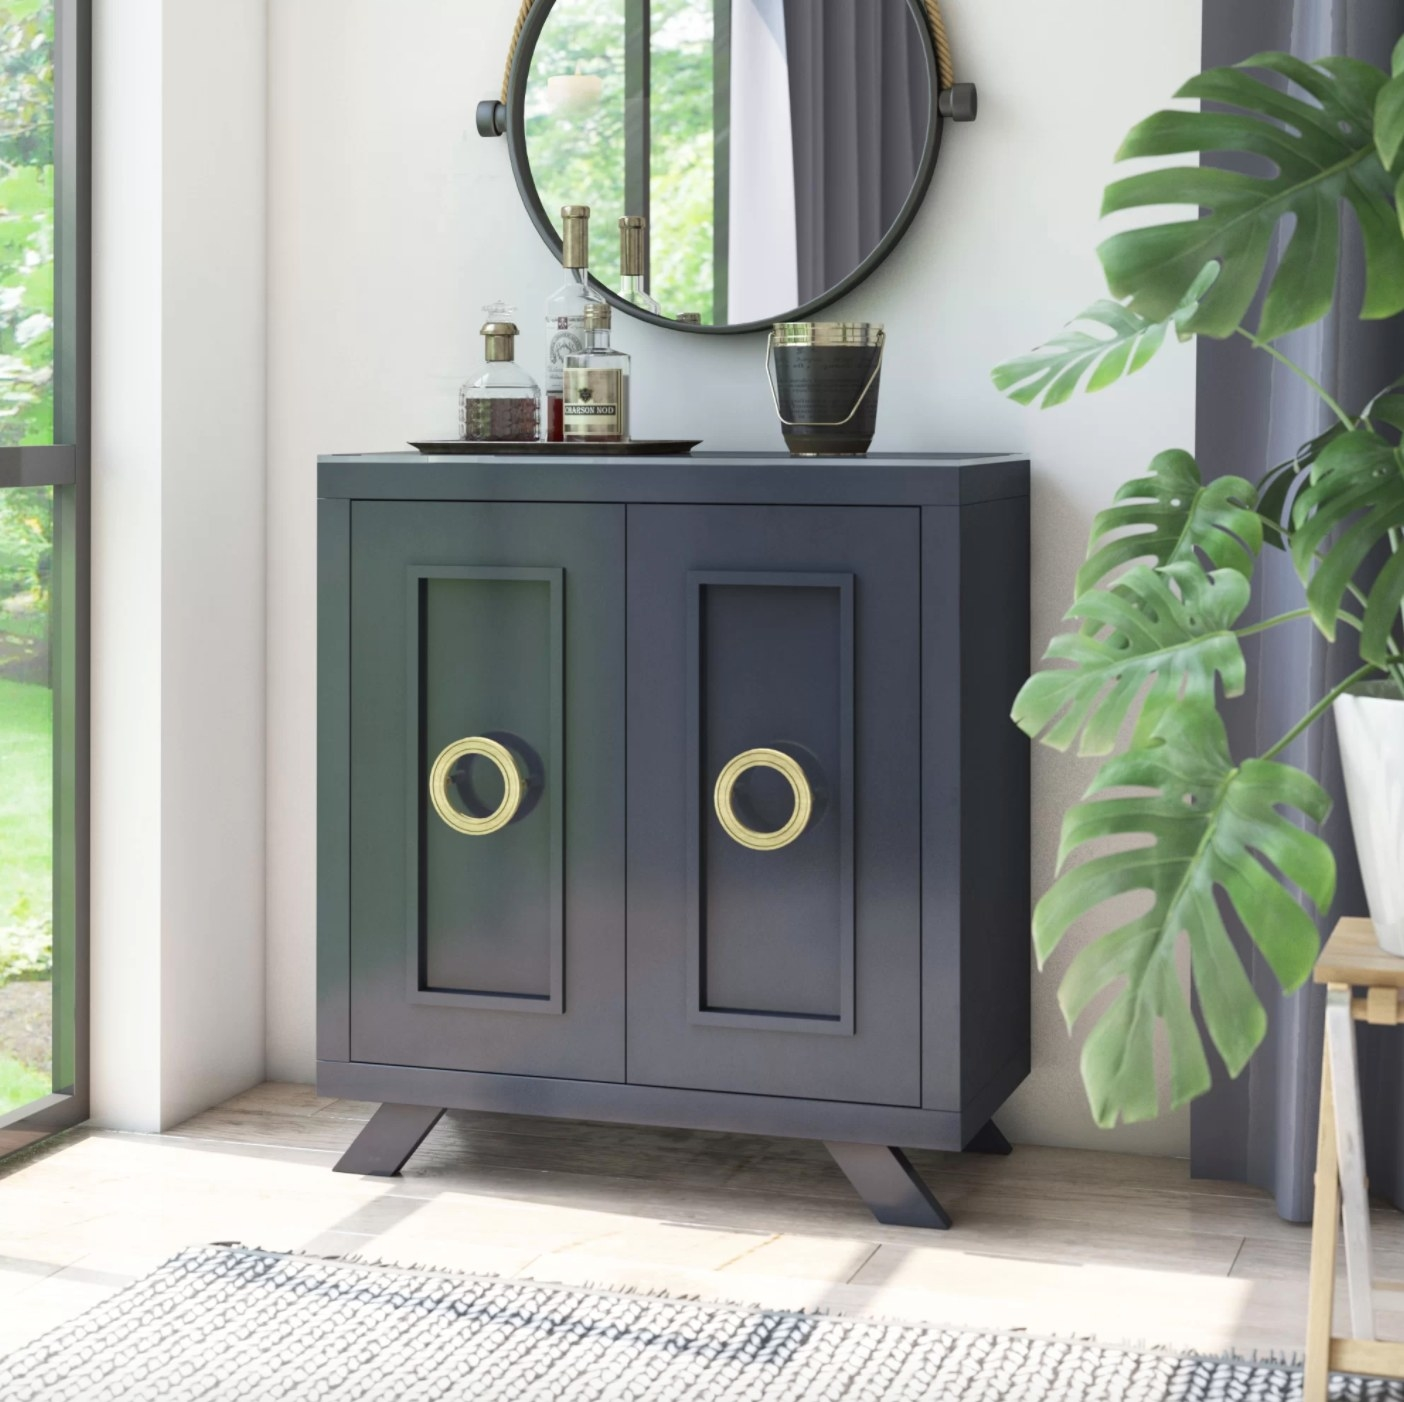 The bar cabinet in franklin blue